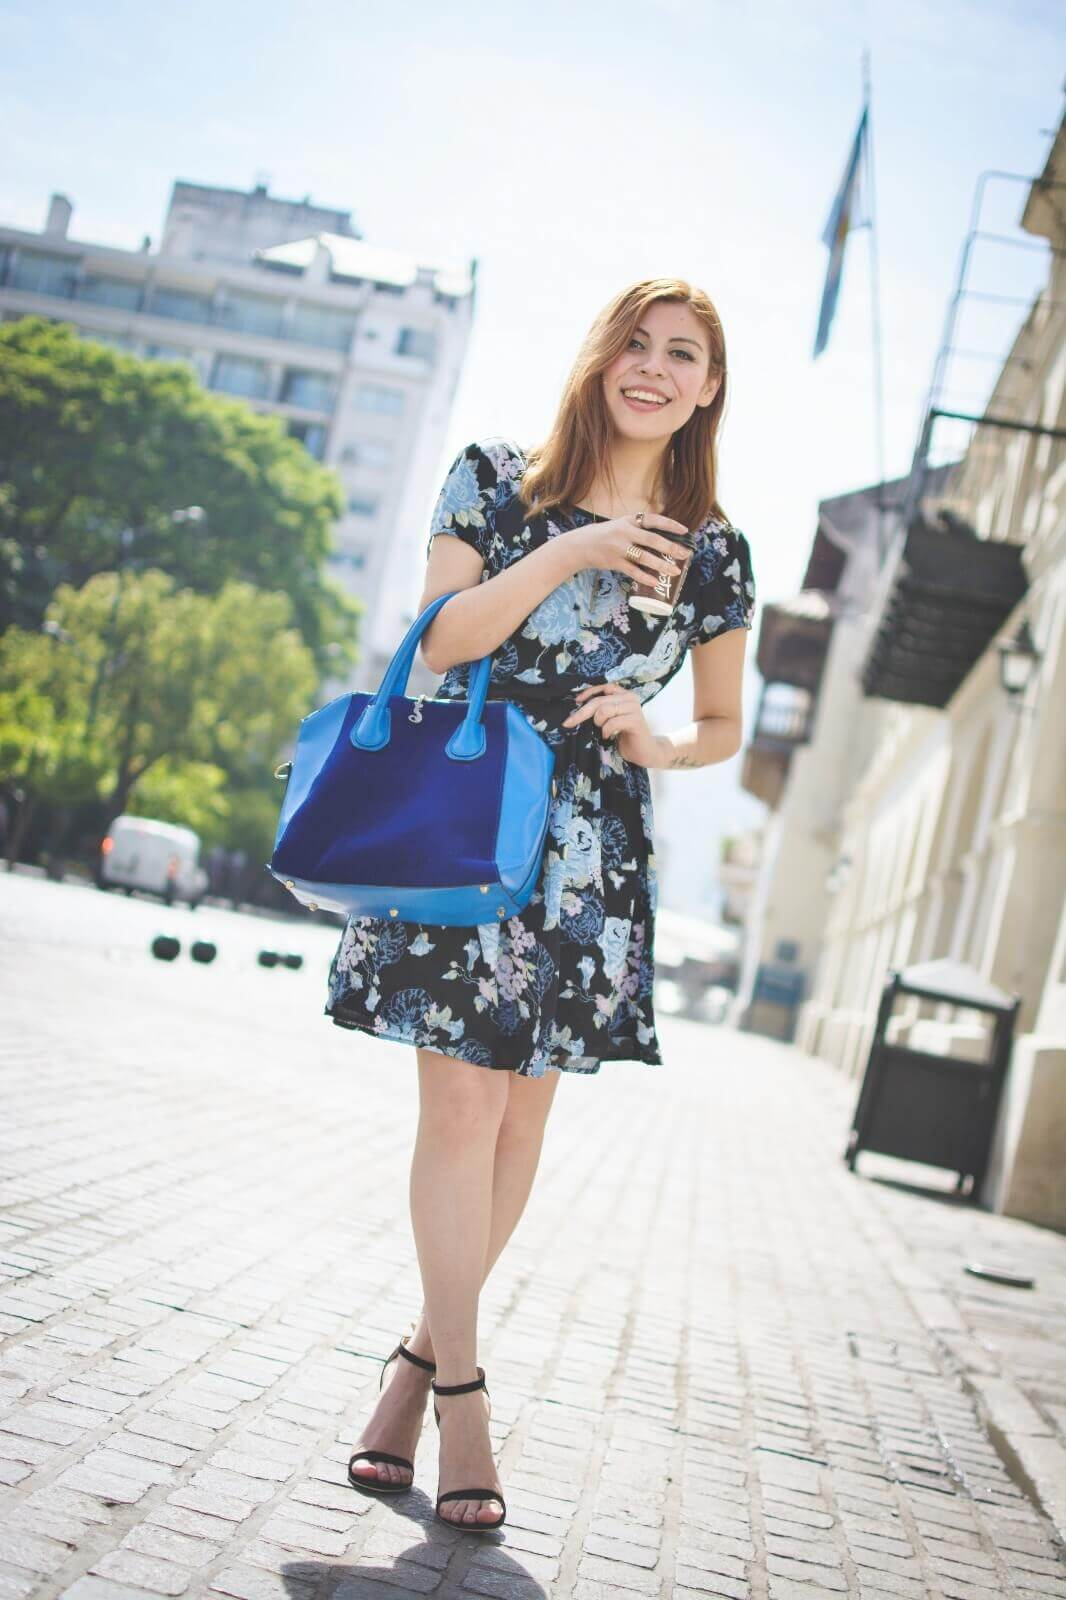 gamiss-black-strappy-sandals-blue-floral-dress-rosegal-cobalt-blue-tote-bag-deborah-ferrero-style-by-deb01